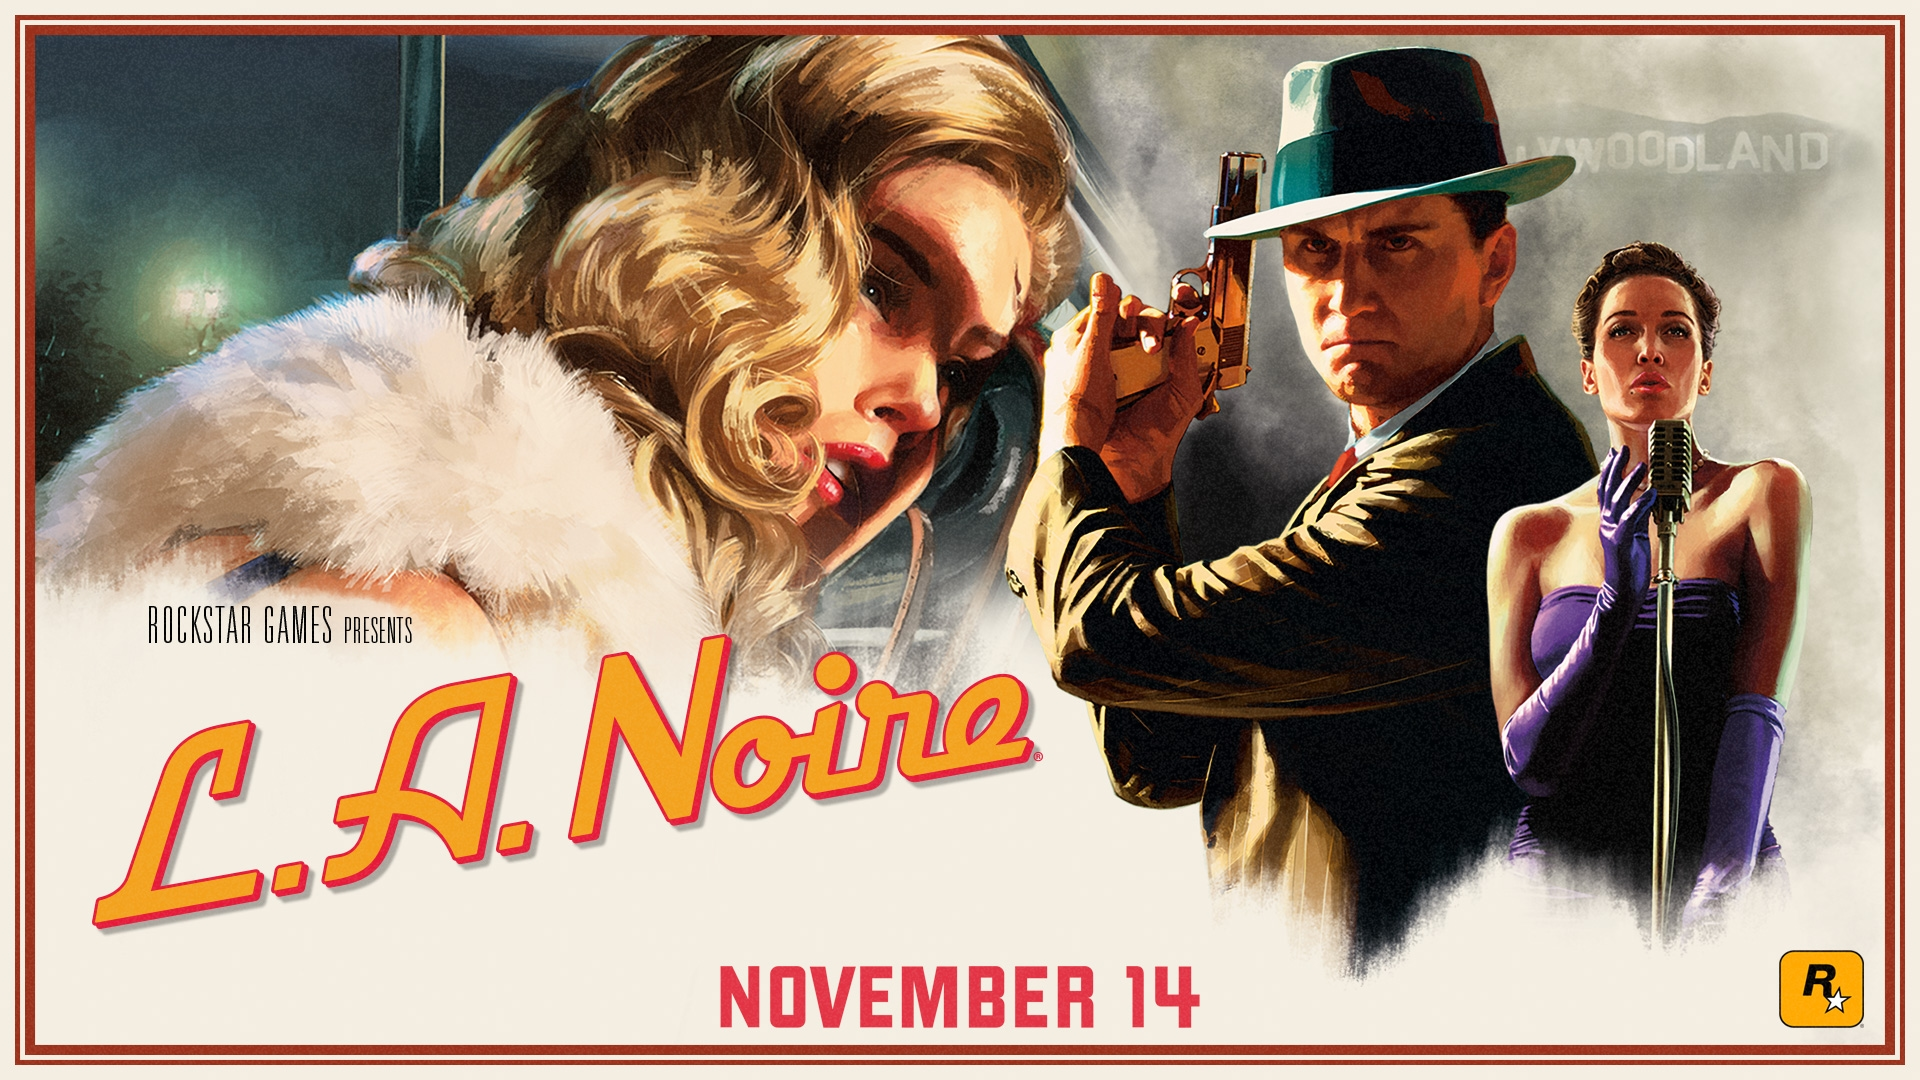 Rockstar's LA Noire Releasing For PS4, Xbox One With Some Improvements